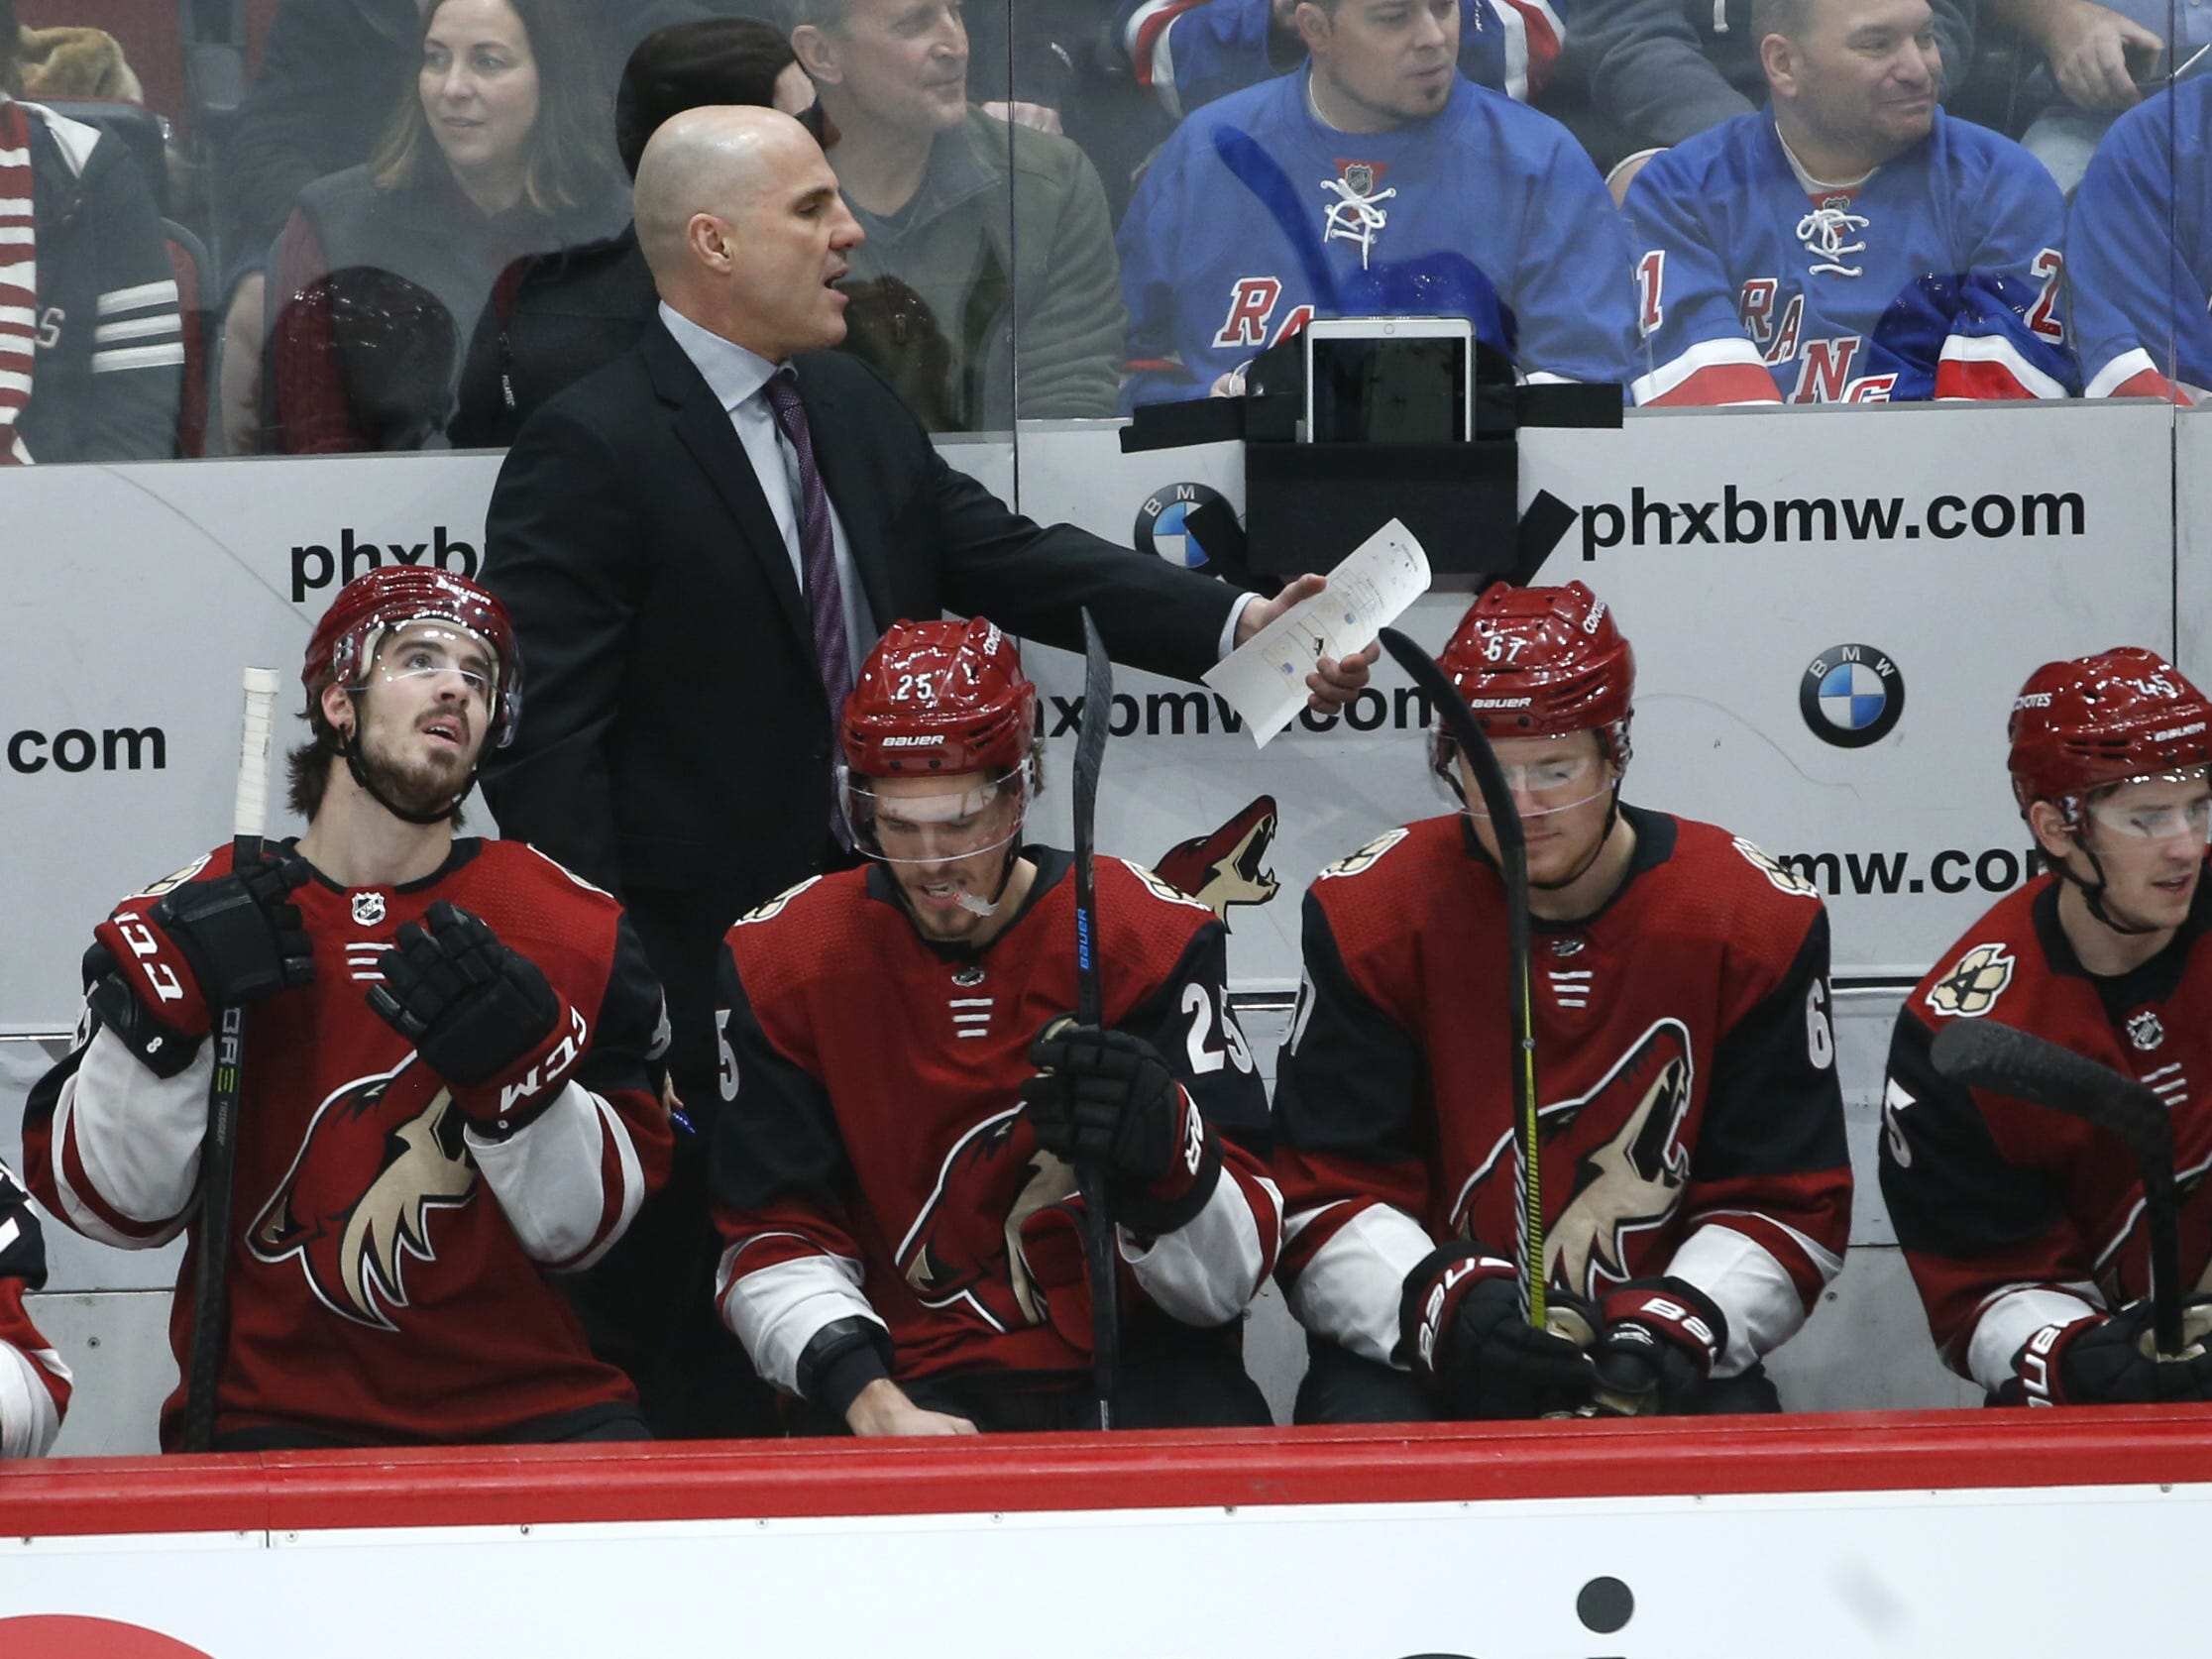 Coyotes' head coach Rick Tocchet talks with his team during the first period against the Rangers at Gila River Arena in Glendale, Ariz. on January 6, 2019.